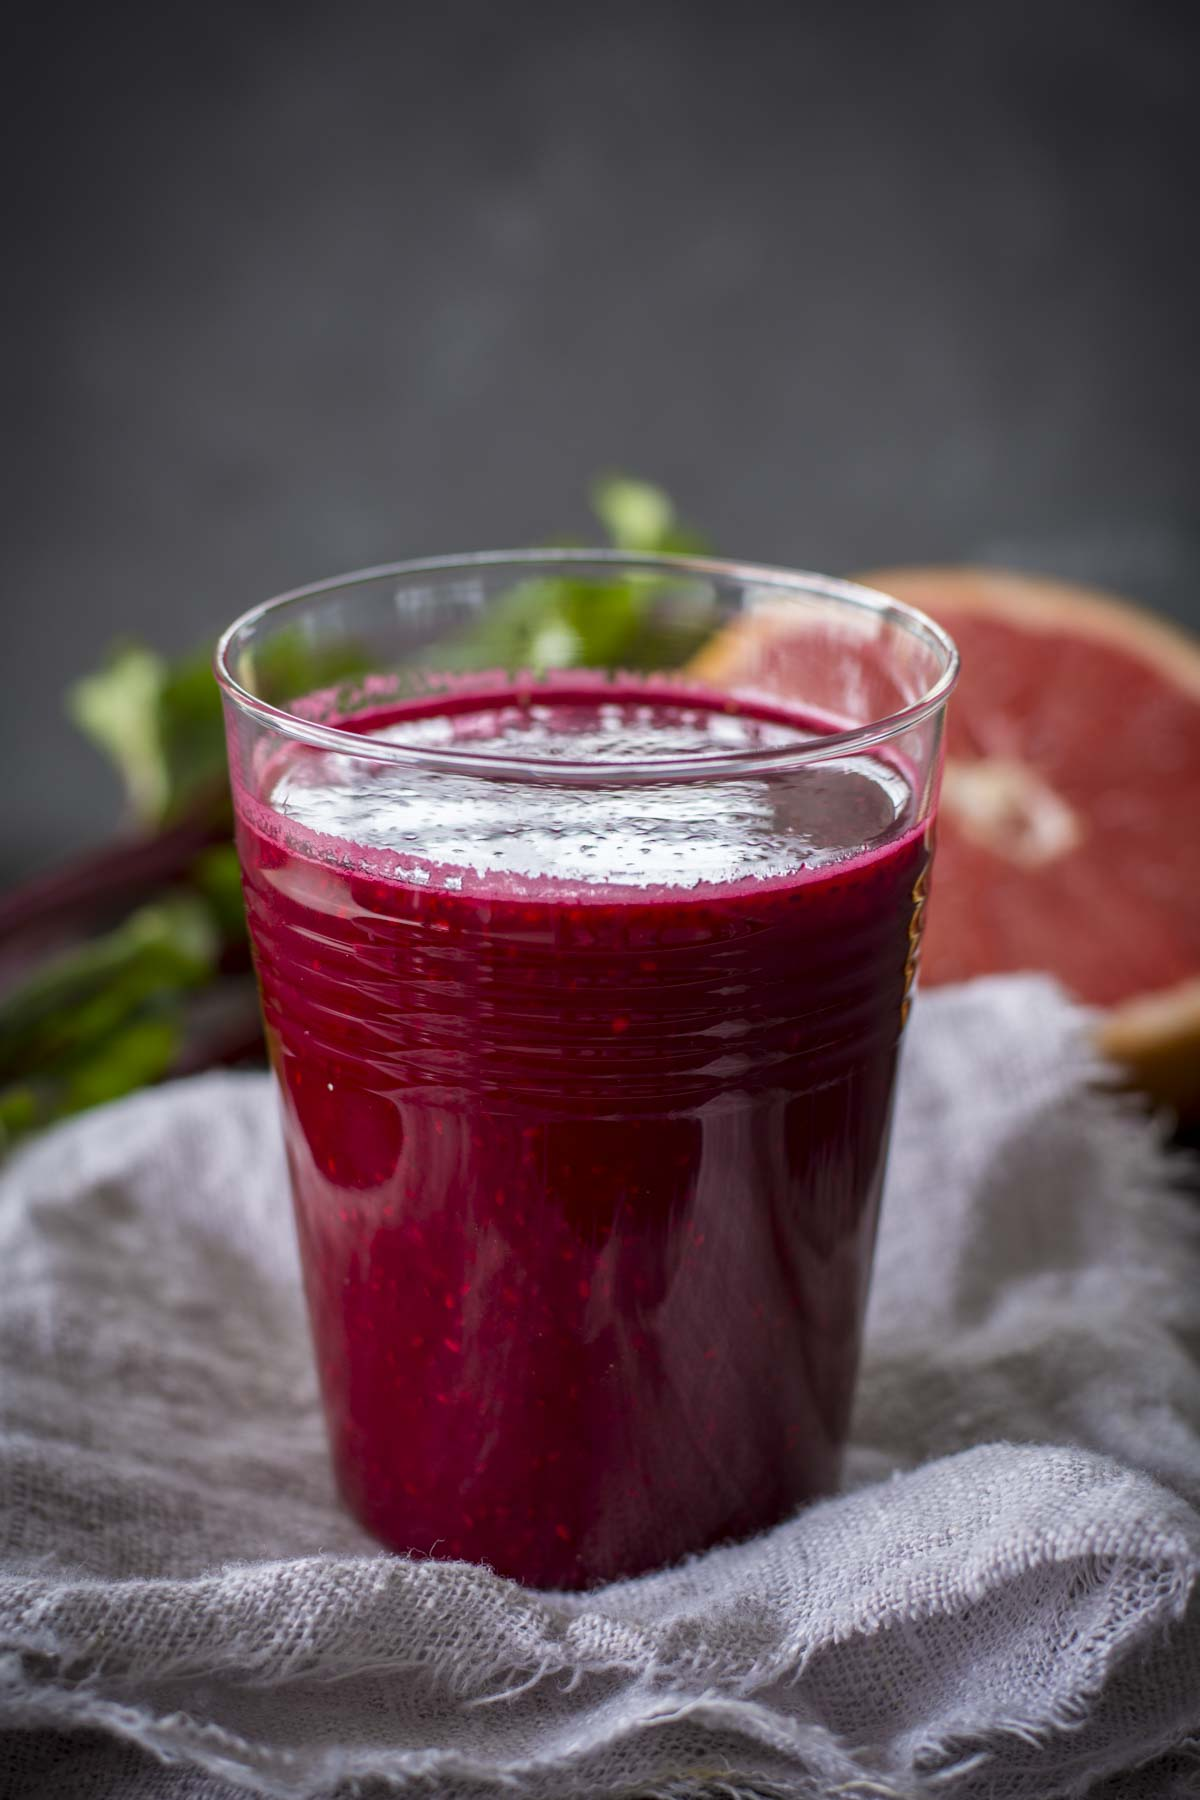 chia beet grapefruit juice in a glass with grapefruit in background